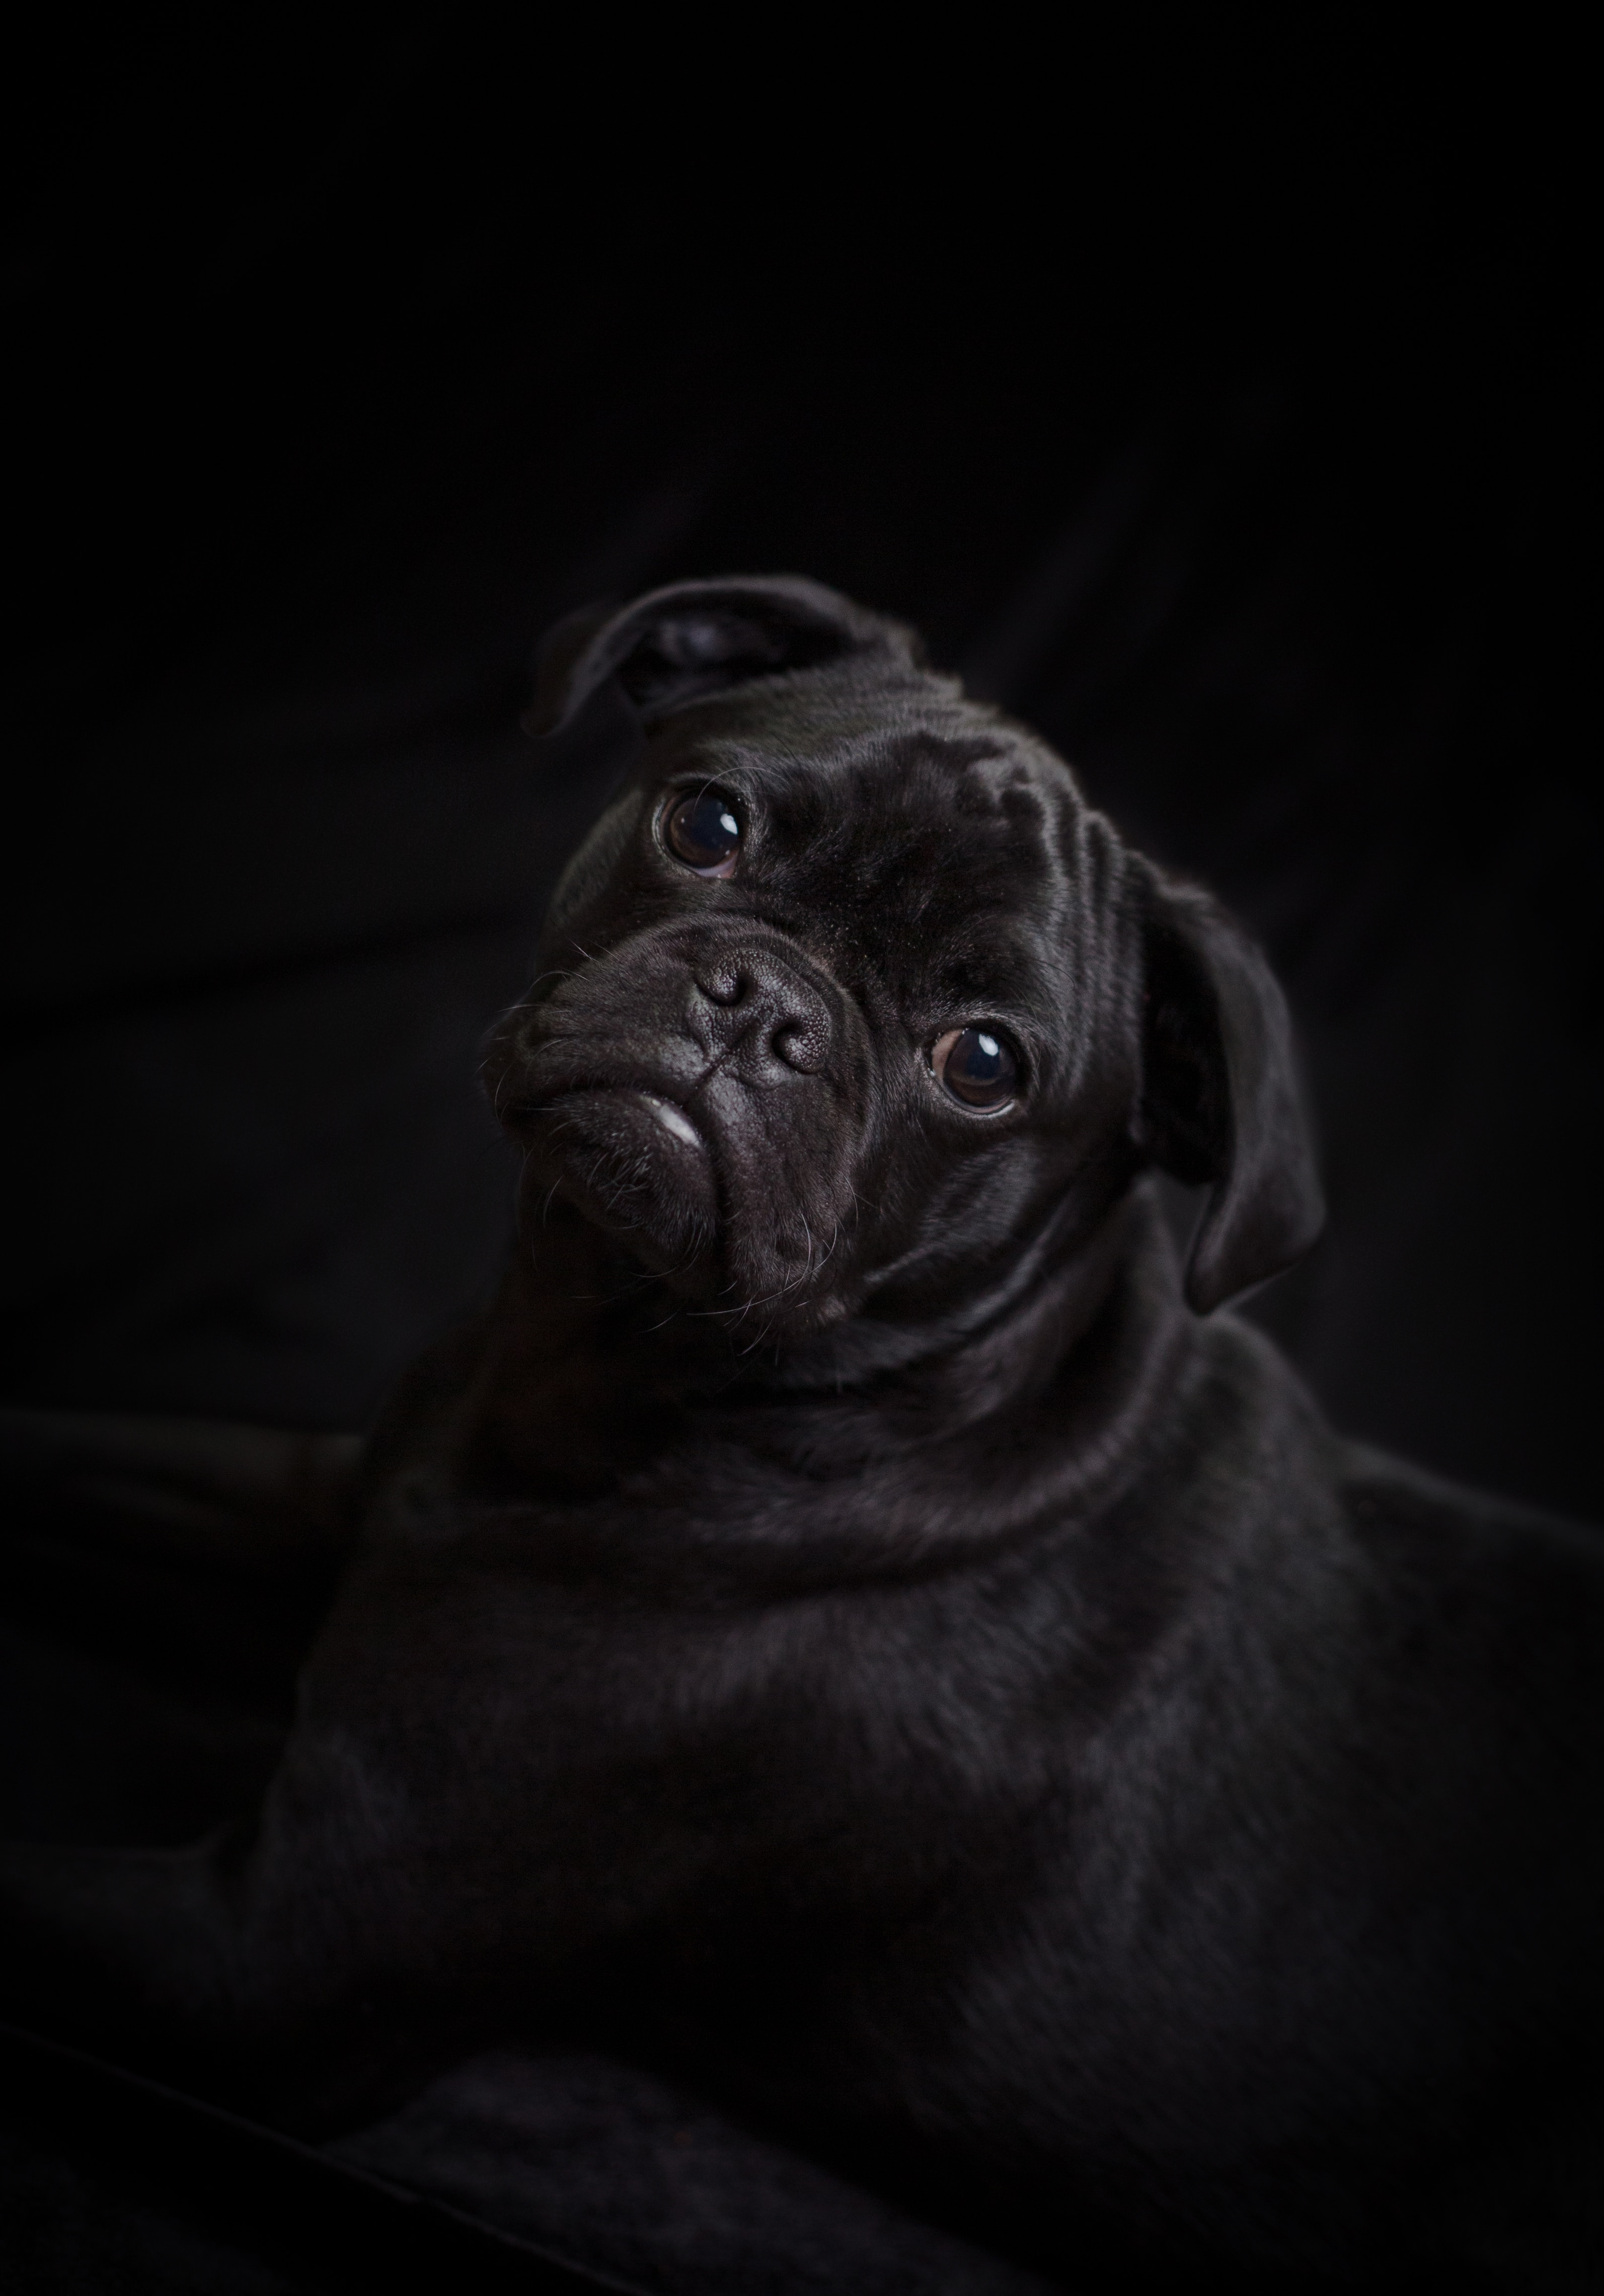 97699 download wallpaper Animals, Pug, Dog, Nice, Sweetheart, Pet screensavers and pictures for free